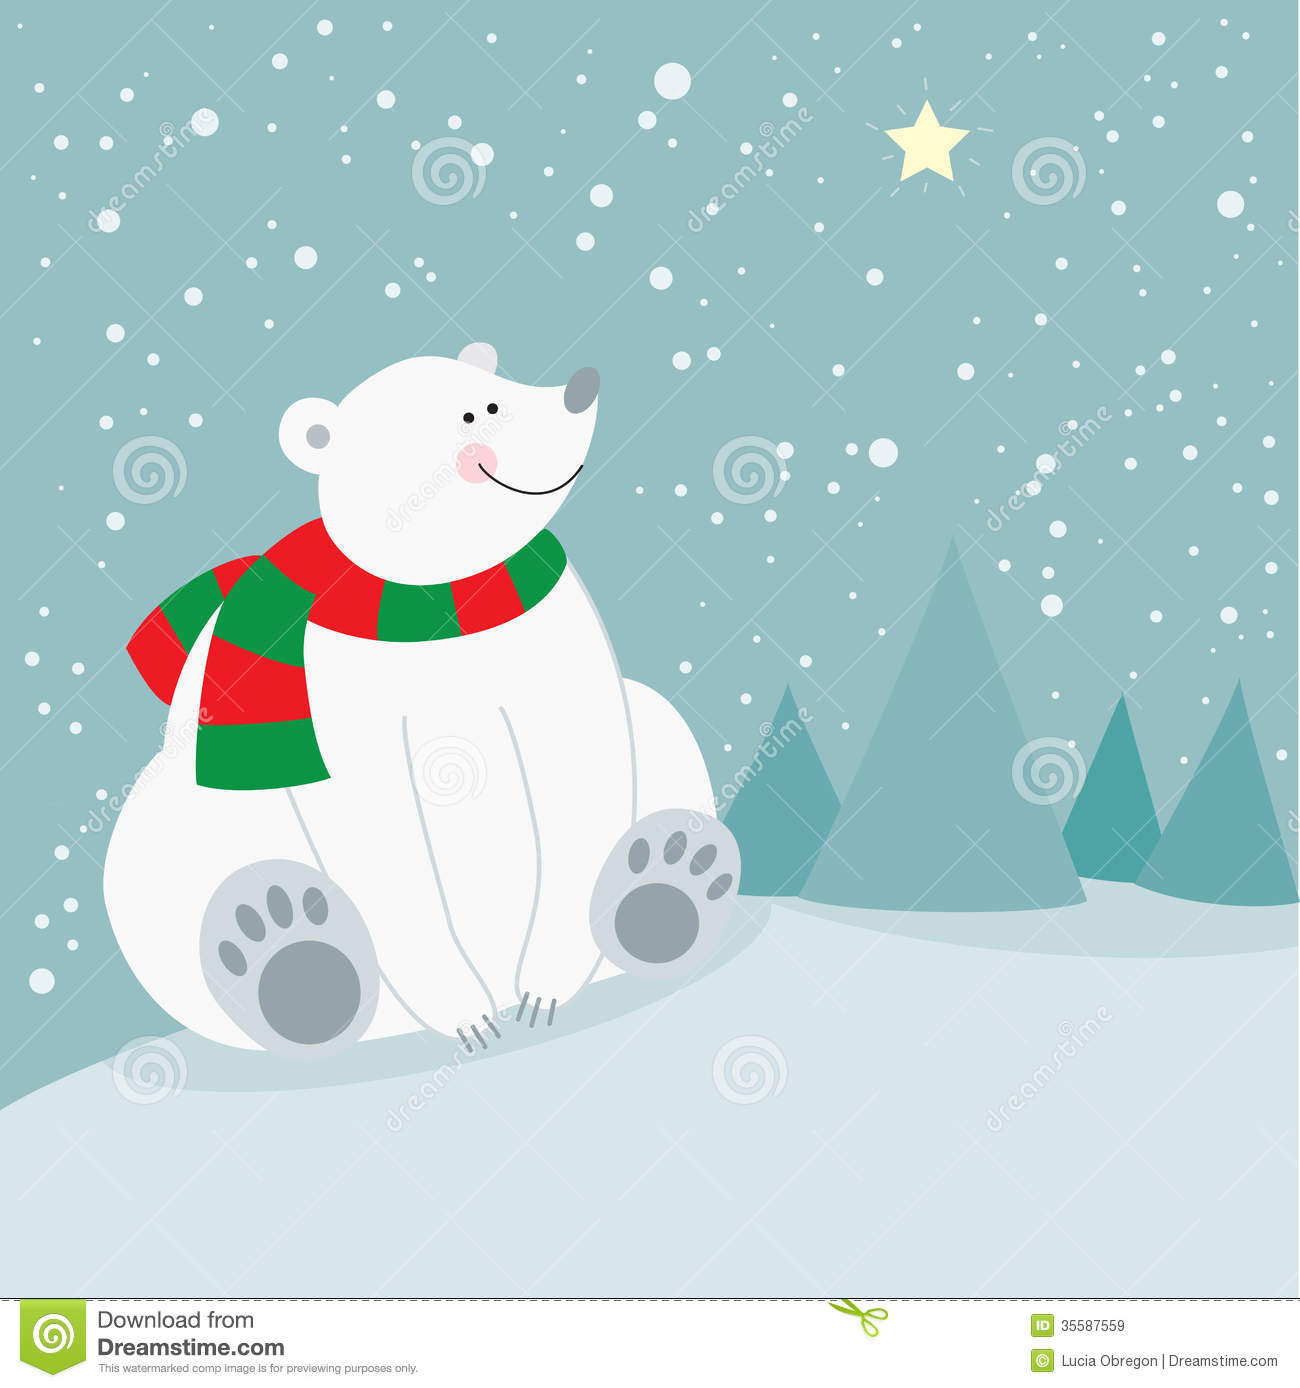 Cute Christmas Holiday Polar Bear Royalty Free Stock Images   Image